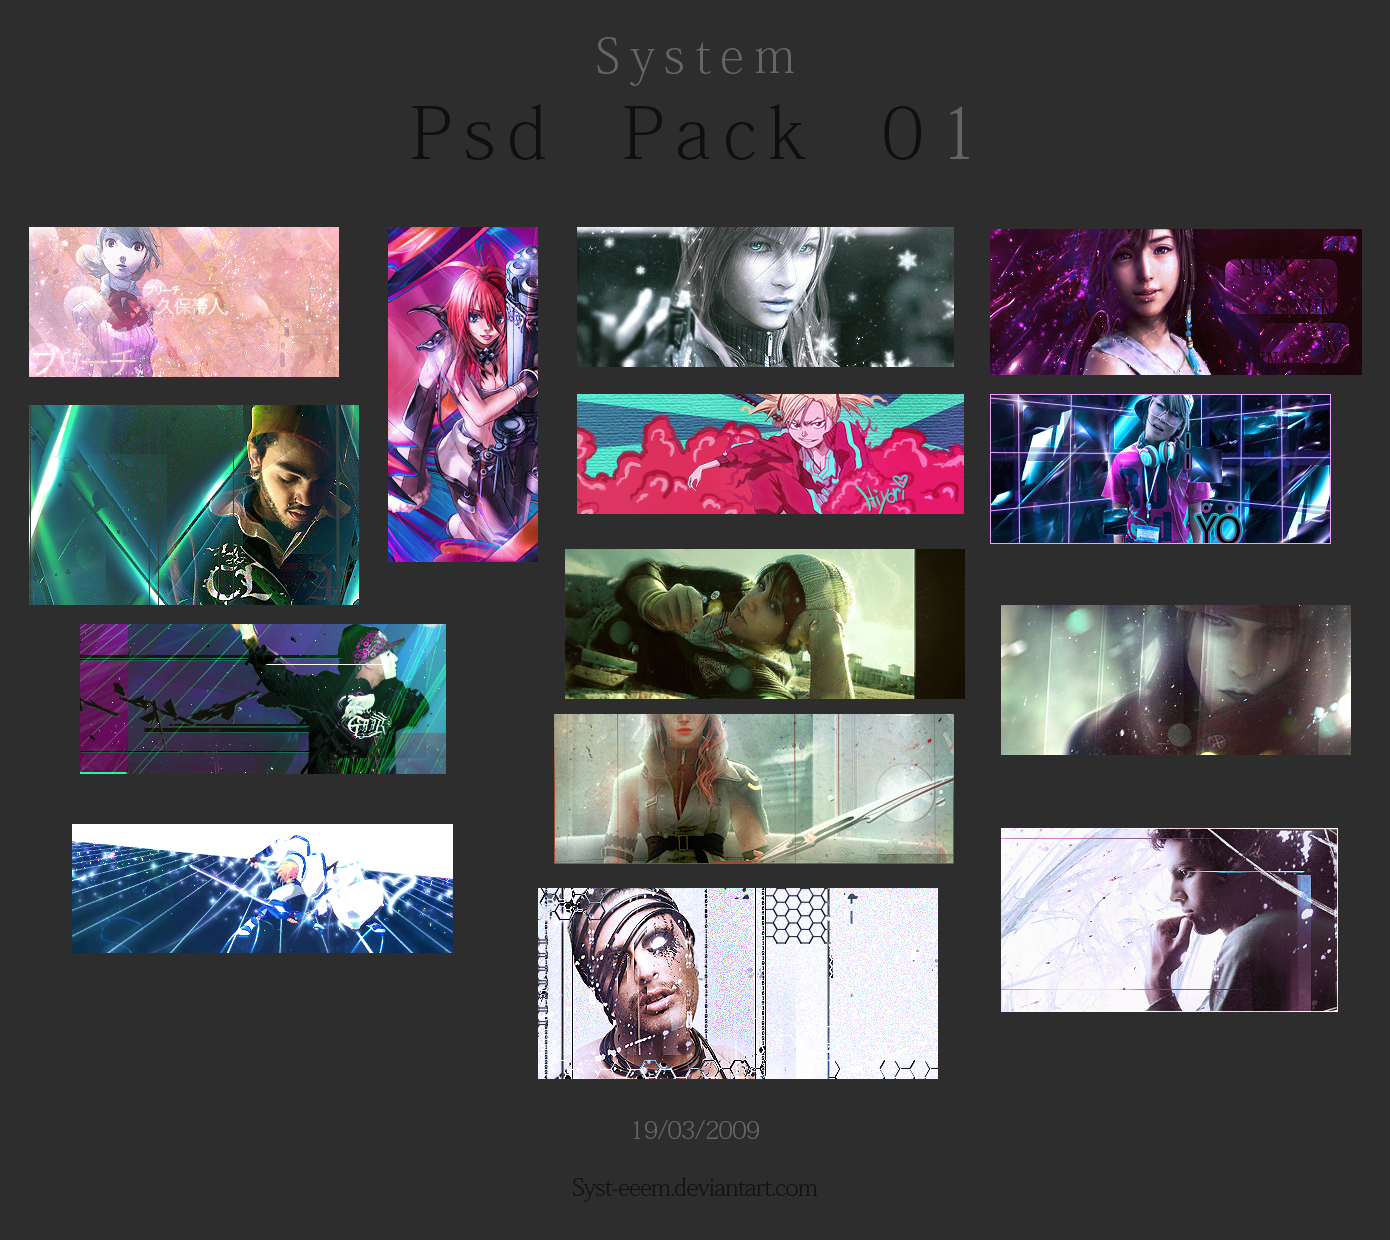 Sys-teem! Pack PSd's Psd_Pack_01_by_Syst_eeem